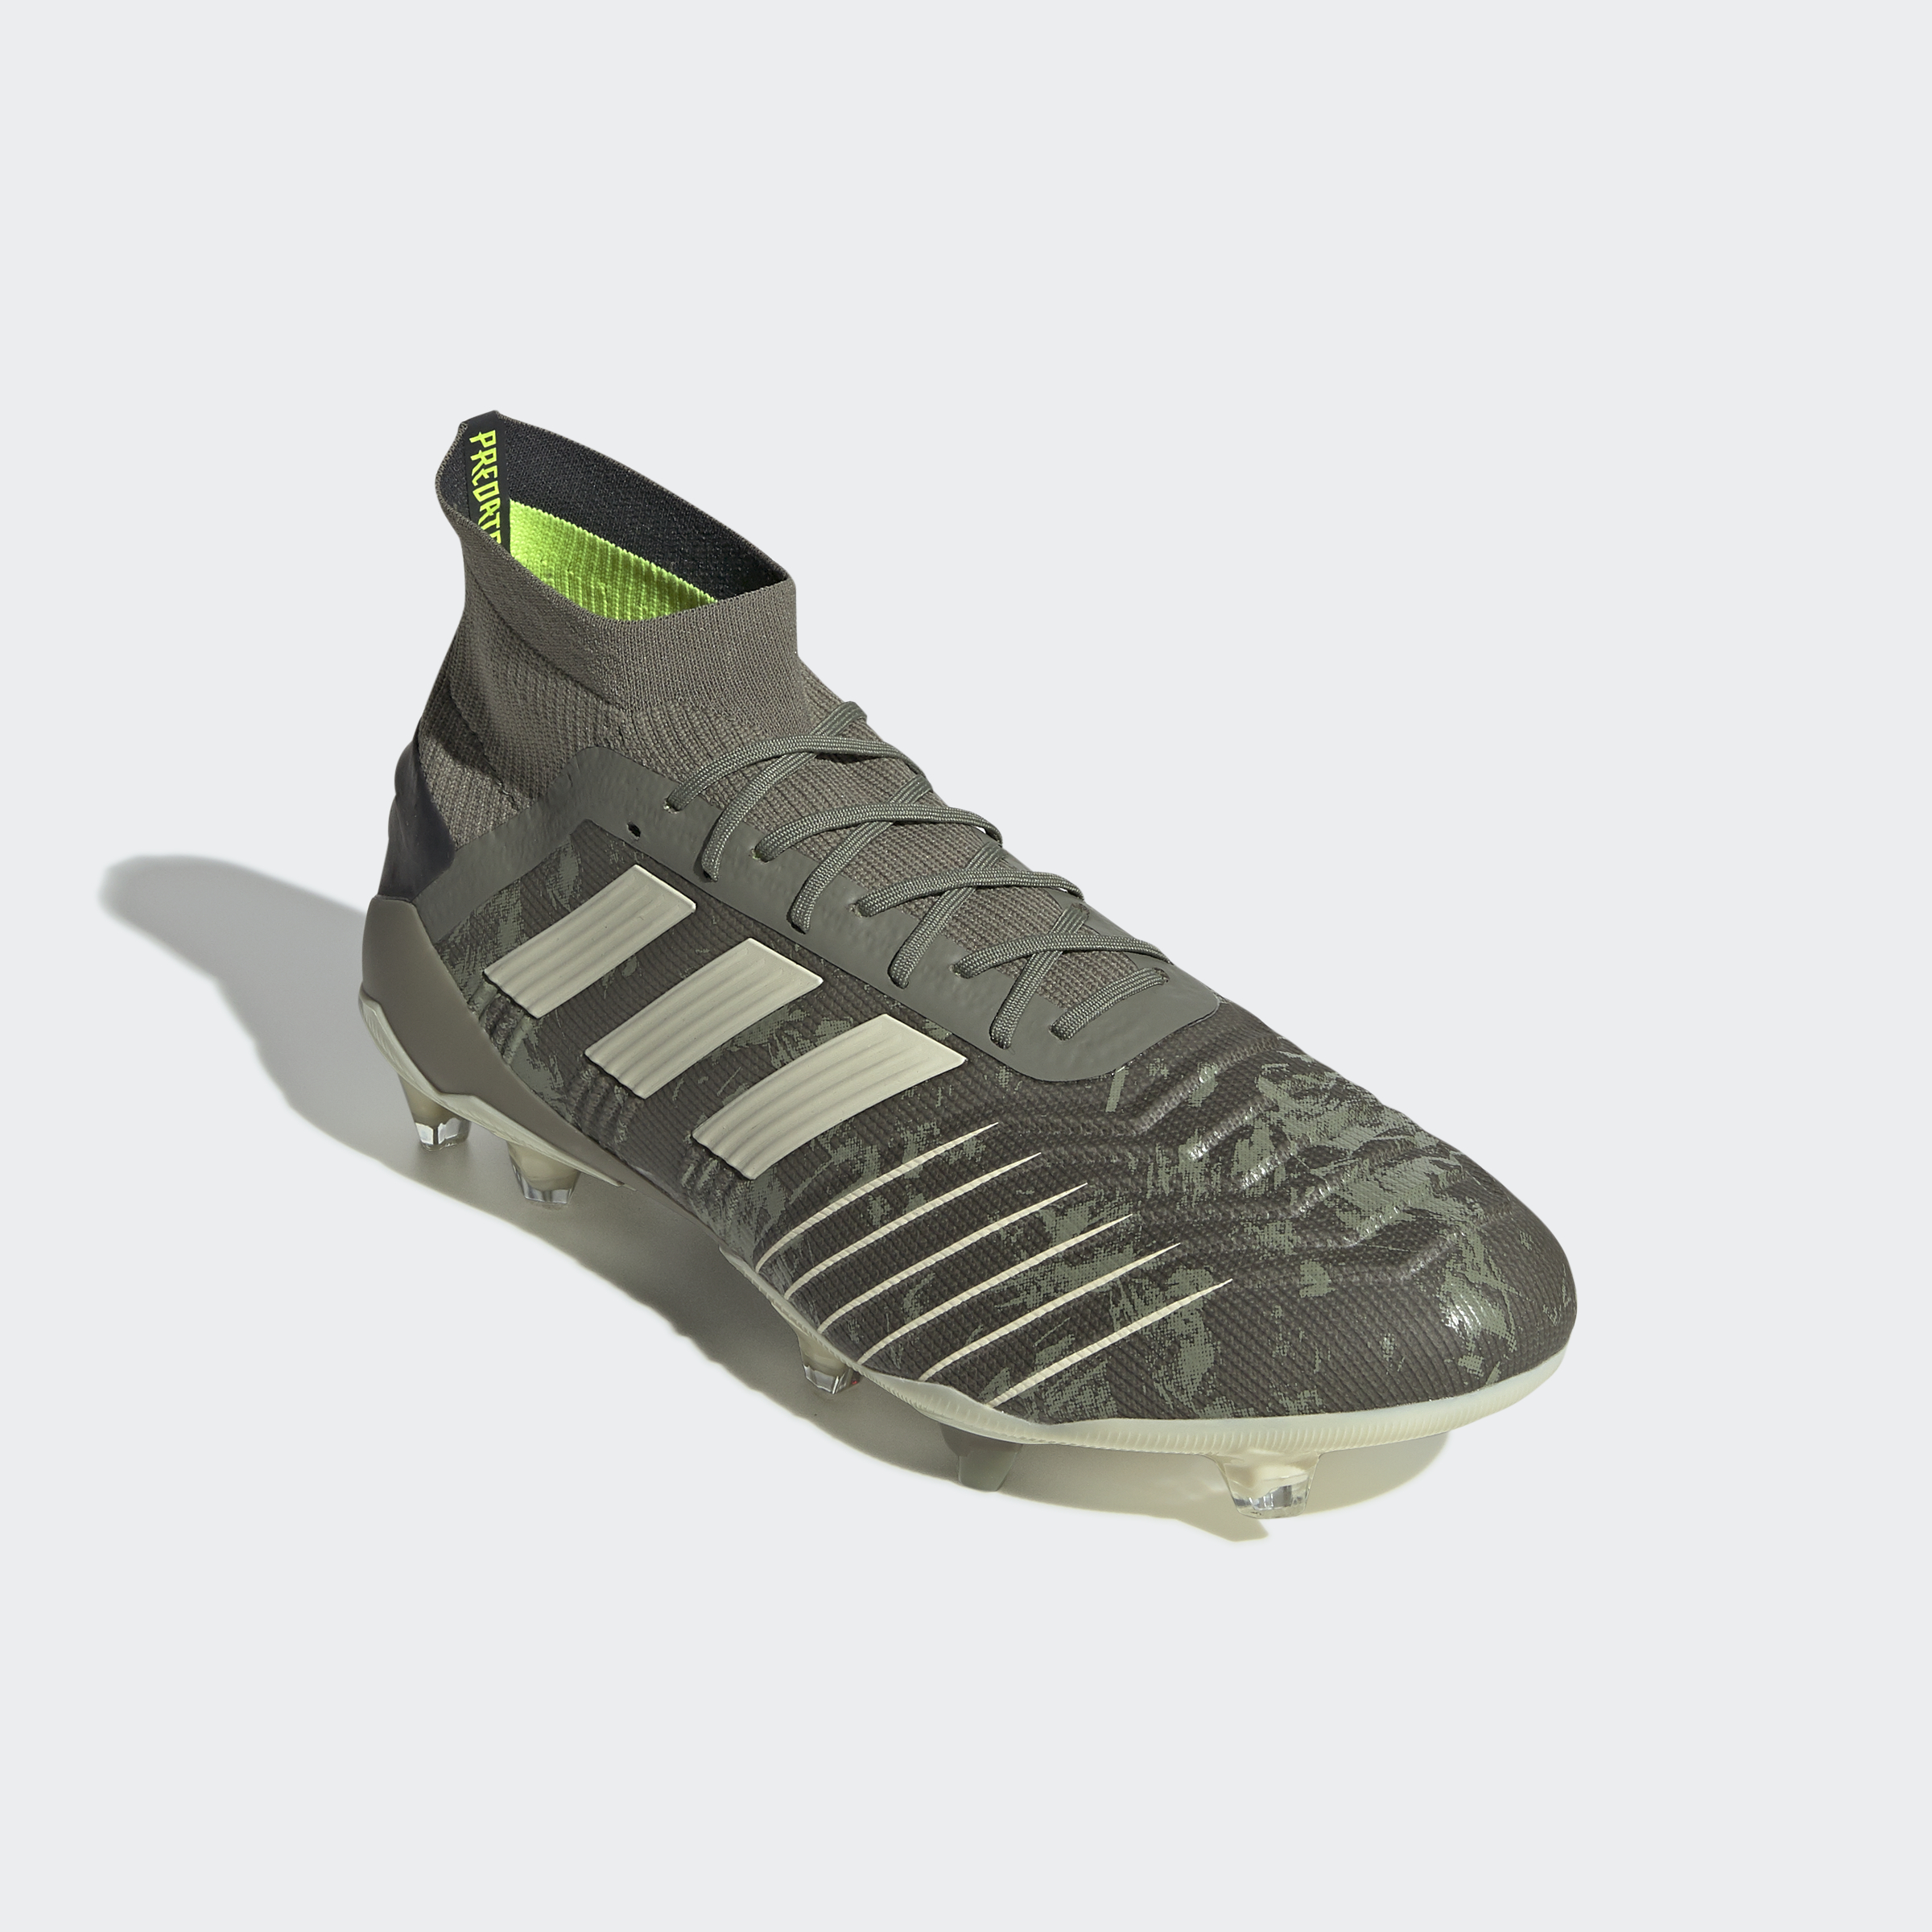 adidas-Predator-19-1-Firm-Ground-Cleats-Football-Boots thumbnail 18